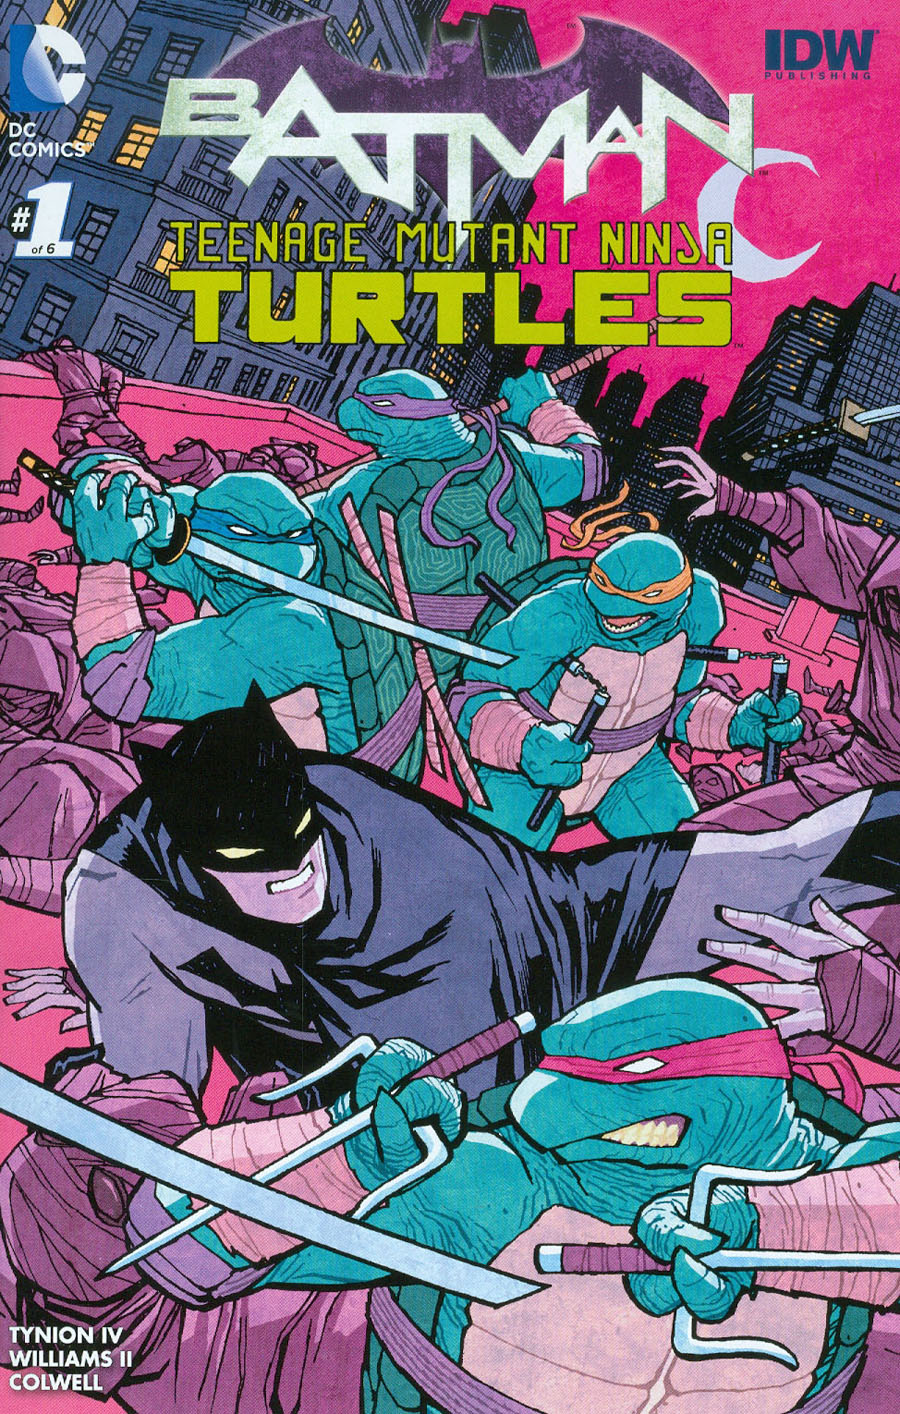 Batman Teenage Mutant Ninja Turtles #1 Cover B Midtown Exclusive Cliff Chiang Color Variant Cover